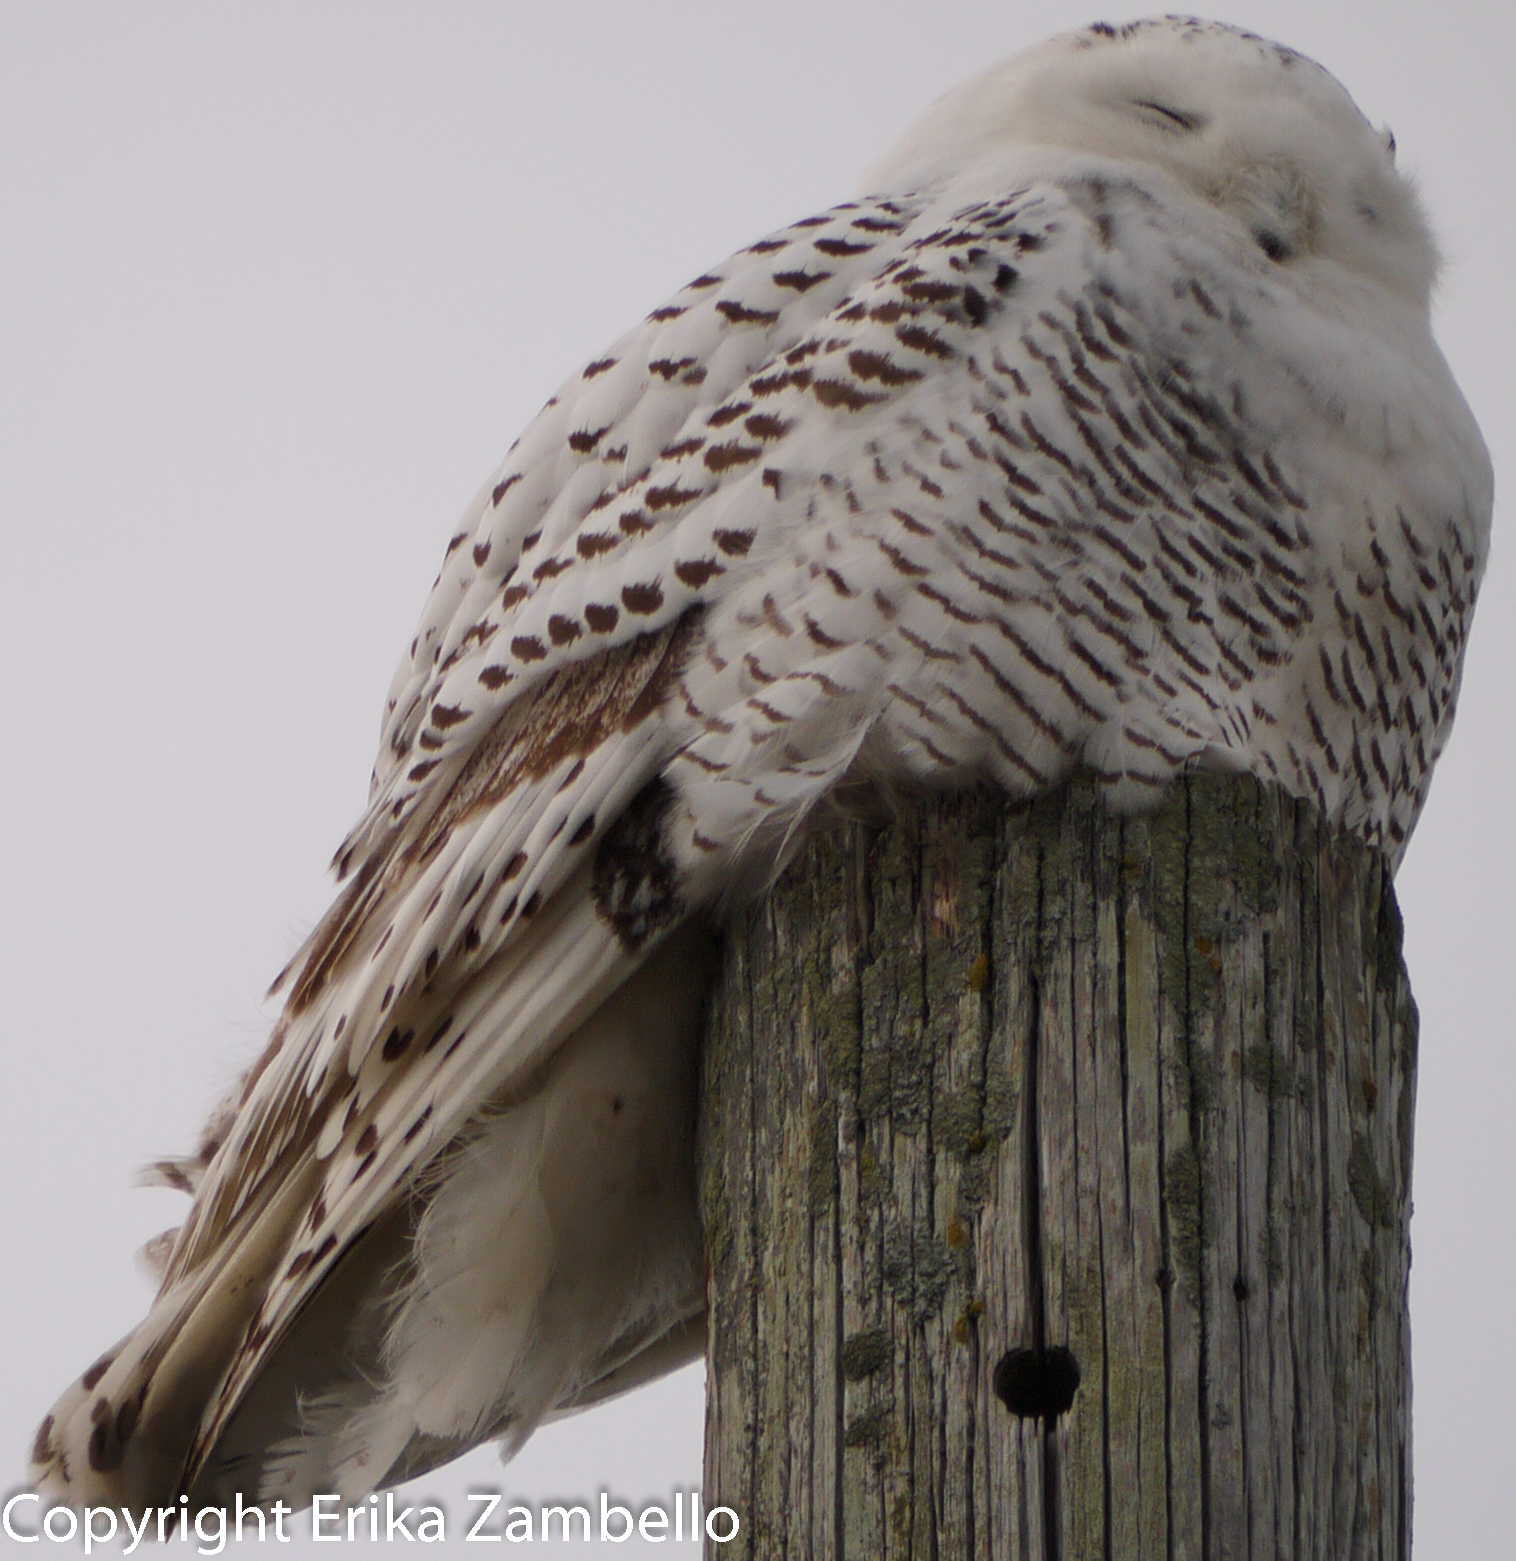 snowy owl, owl, coastline, ocean, maine, winter, holidays, birding, birds, birdwatching, wildlife, landscape, vista, view. nature